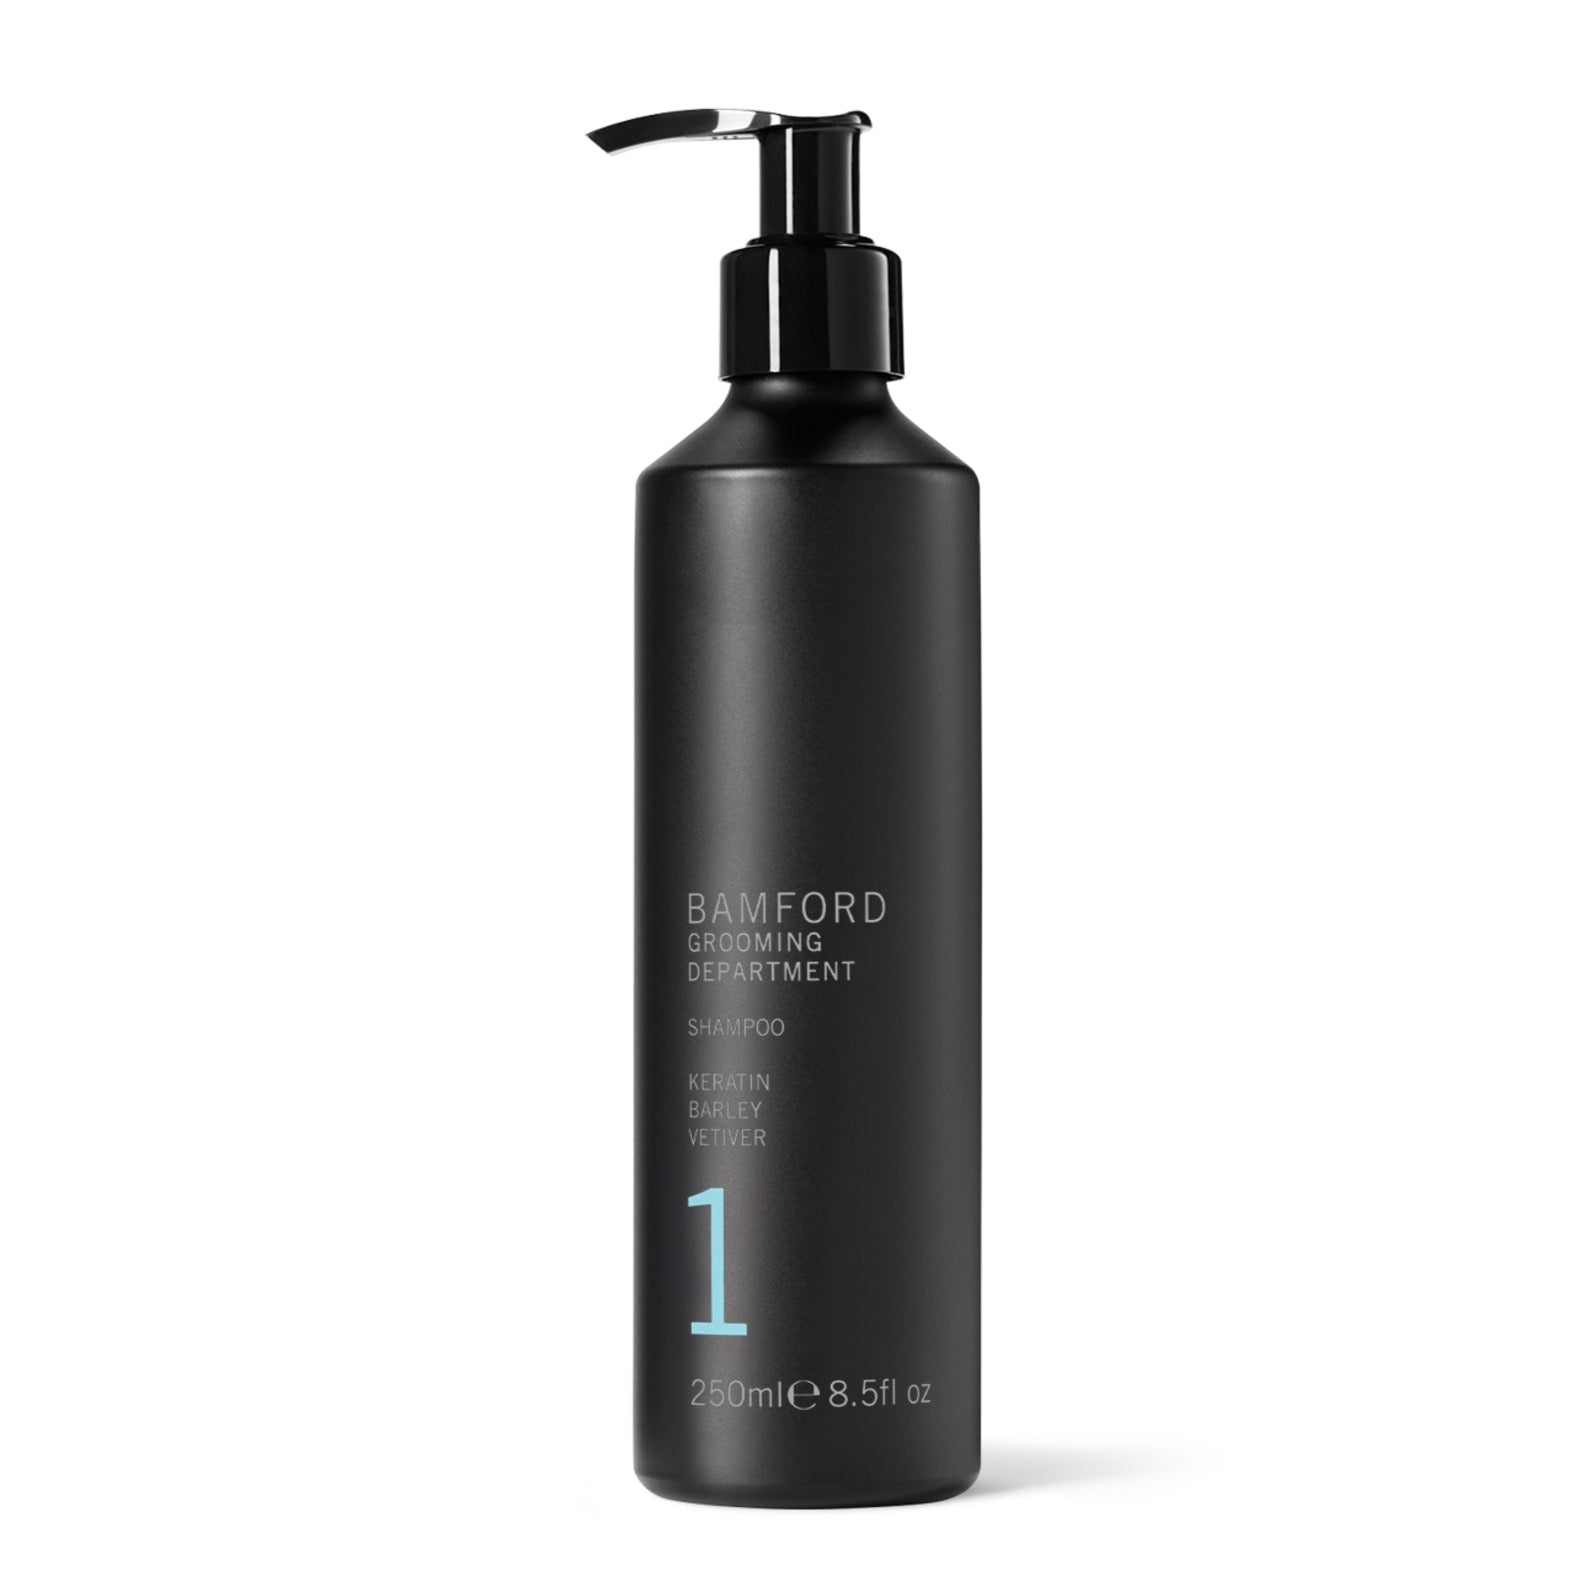 A daily conditioning shampoo with Keratin and Barley protein to cleanse and refresh hair. Fragrance notes - A rare blend of fresh Vetiver, Bergamot and Cassis tempered with an elegant combination of wood smoke, warming dark Amber, Agarwood and leather.